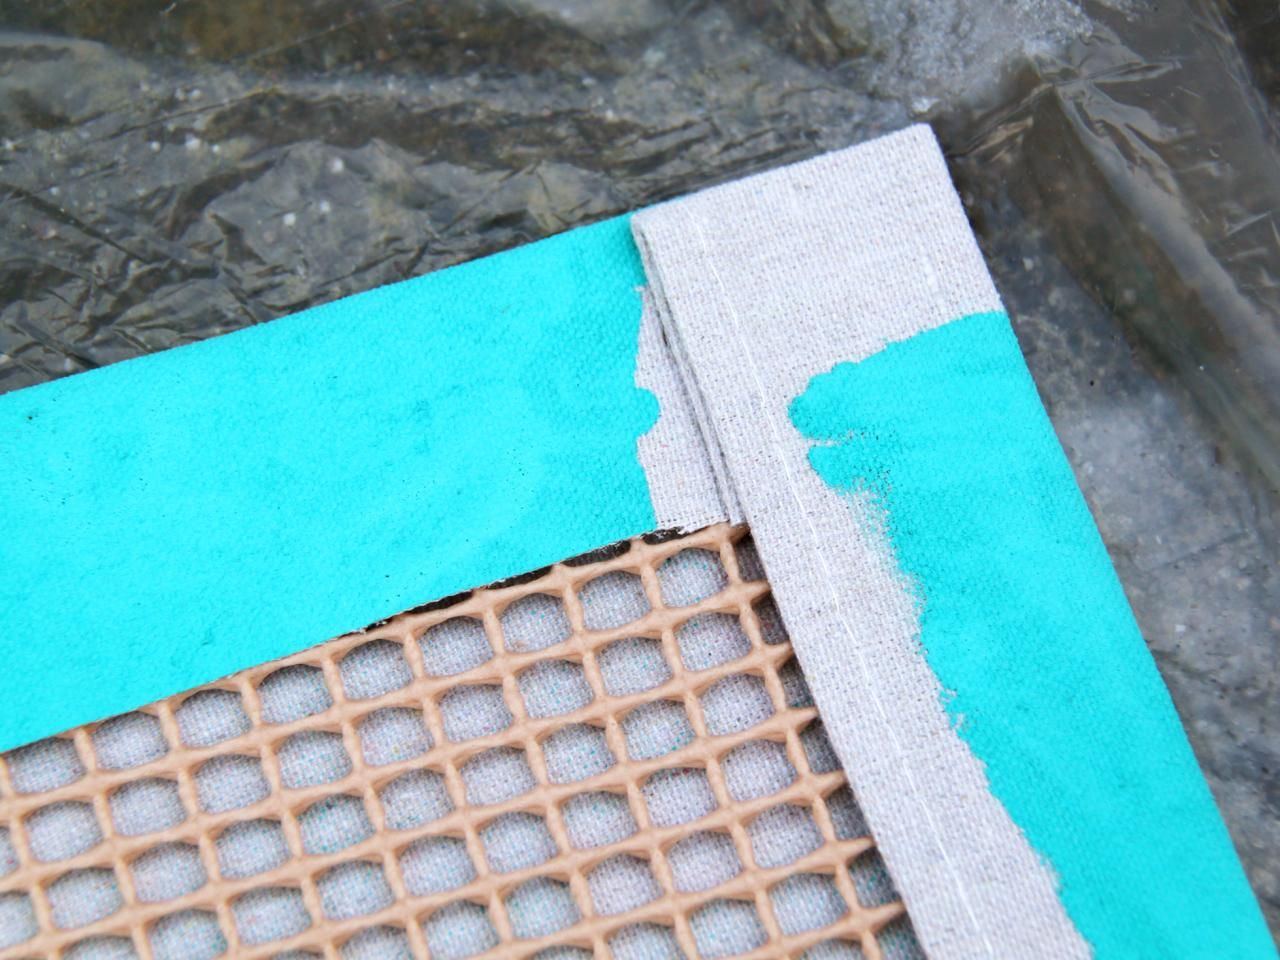 How To Turn A Canvas Drop Cloth Into An Outdoor Rug Patio Rug Diy Drop Cloth Rug Canvas Drop Cloths